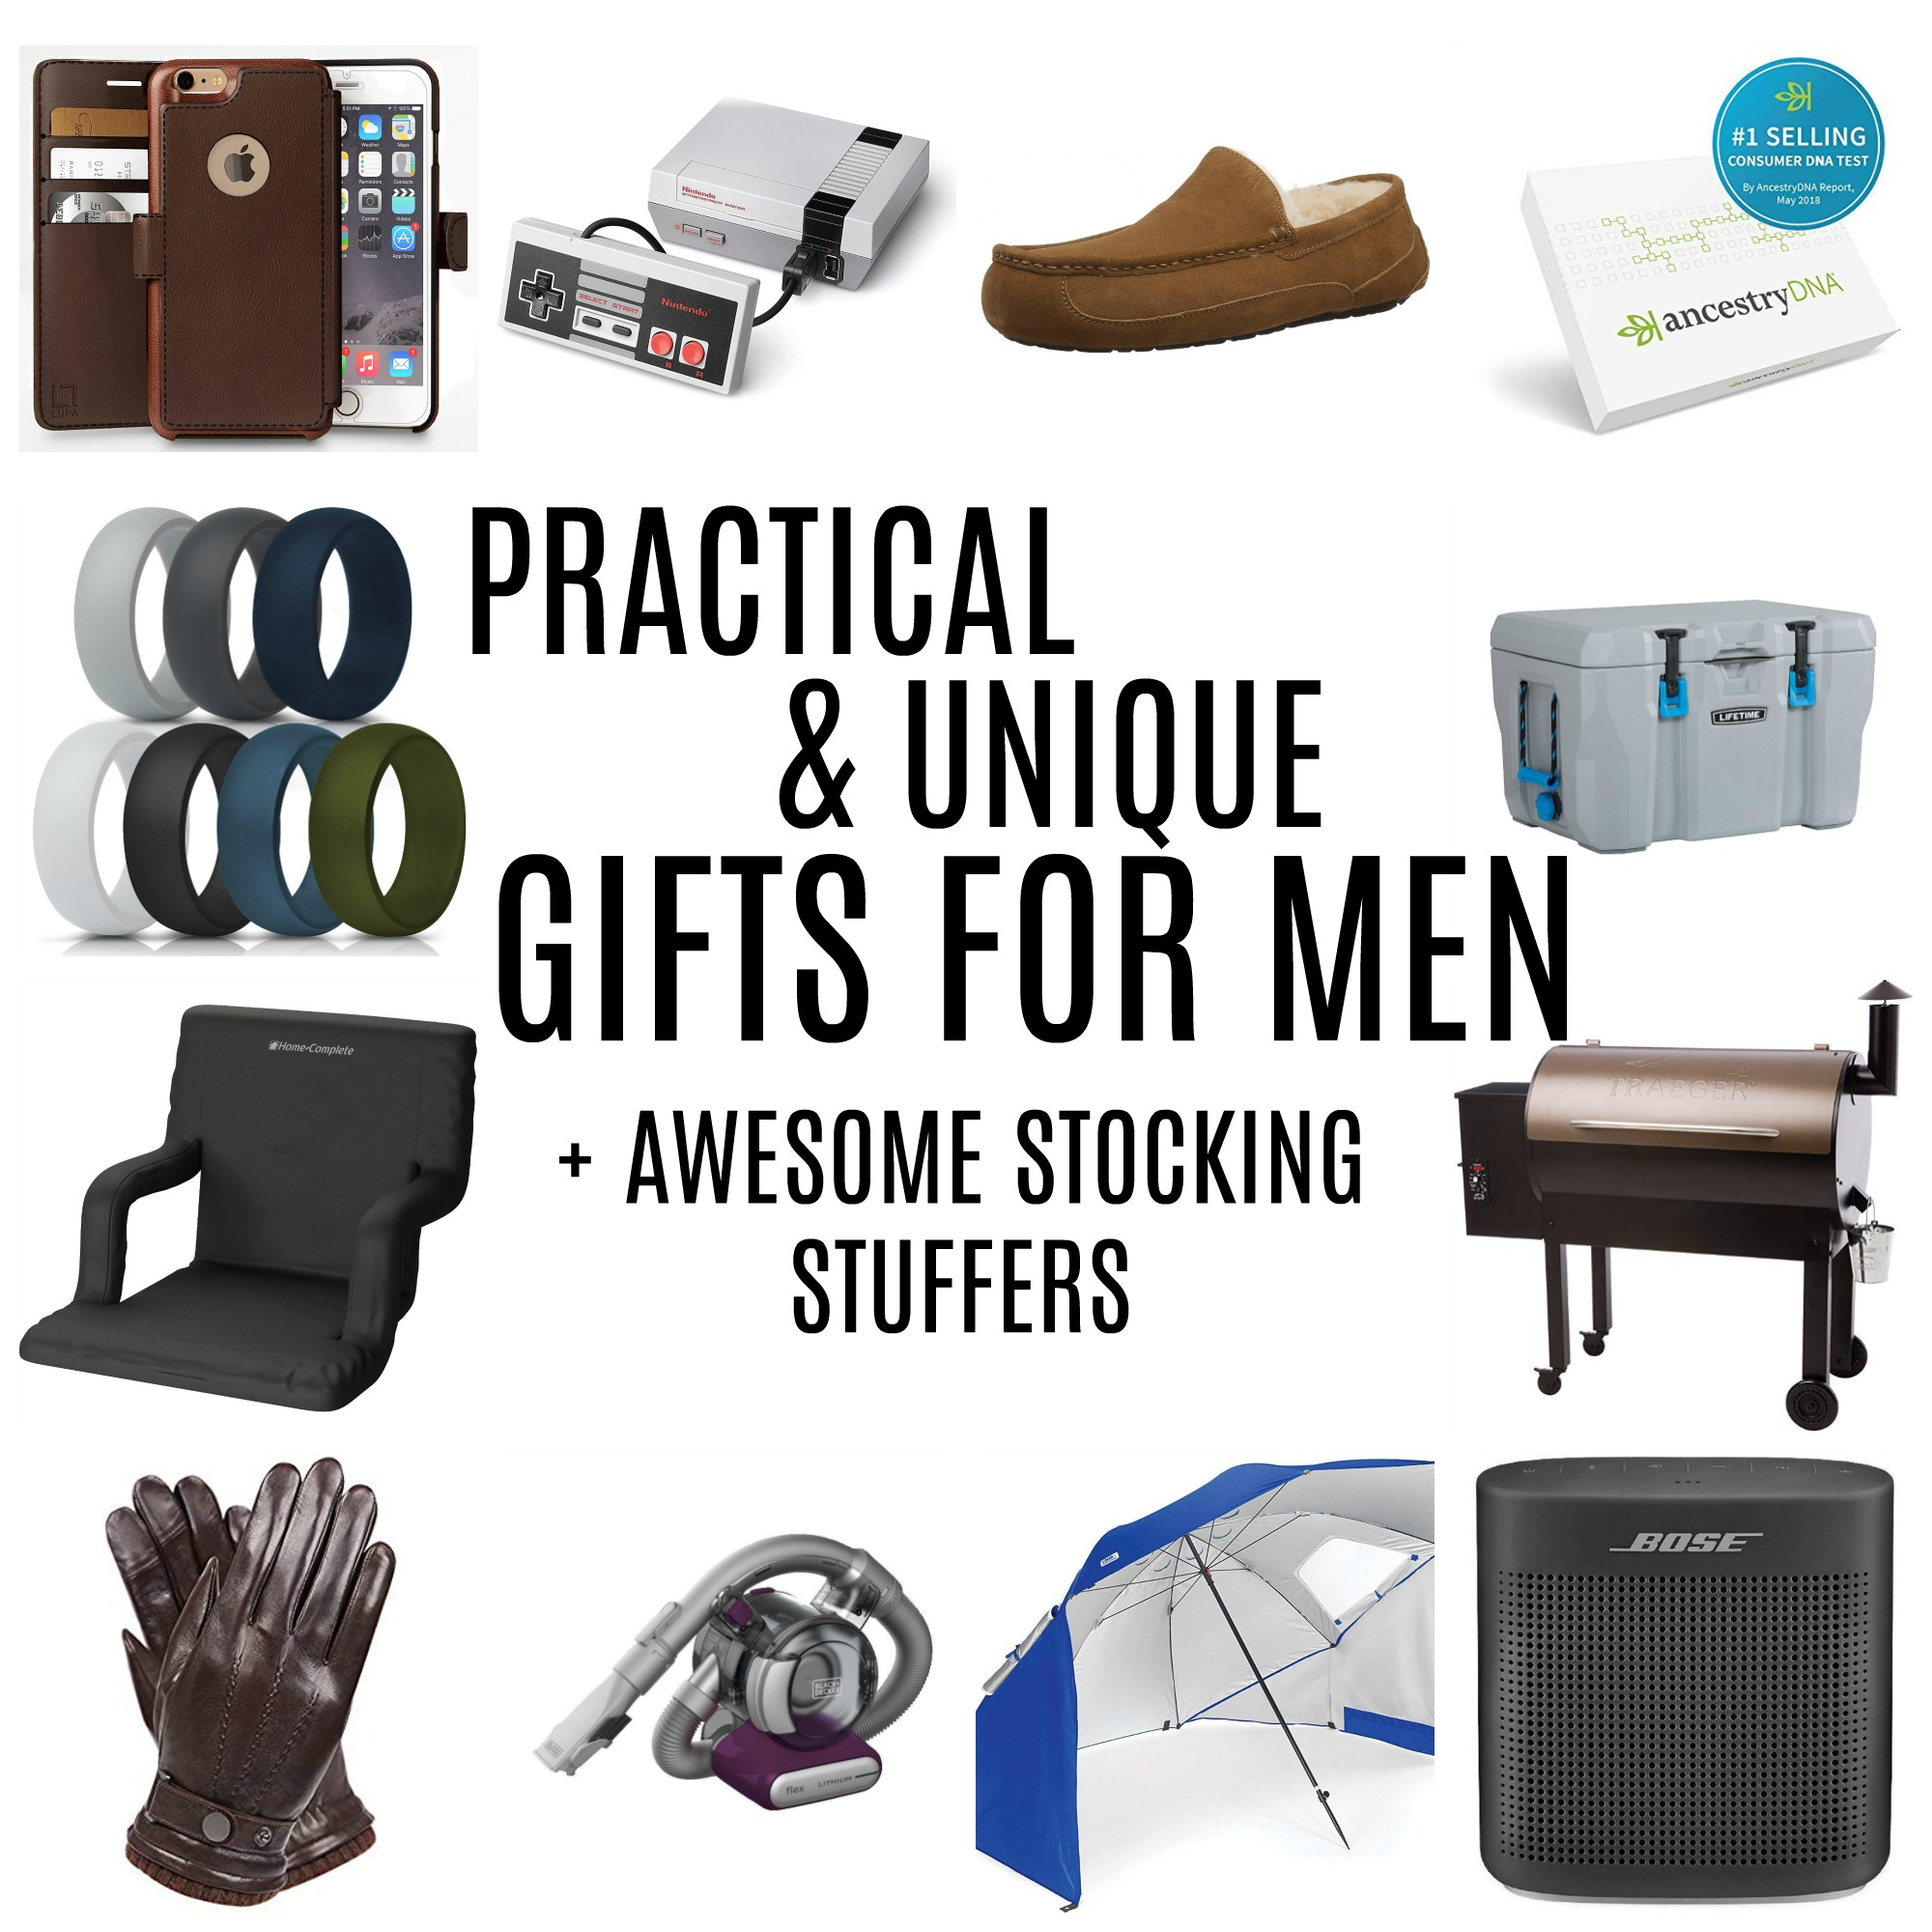 Great Practical Gifts And Stocking Stuffers For Men Brooke Romney